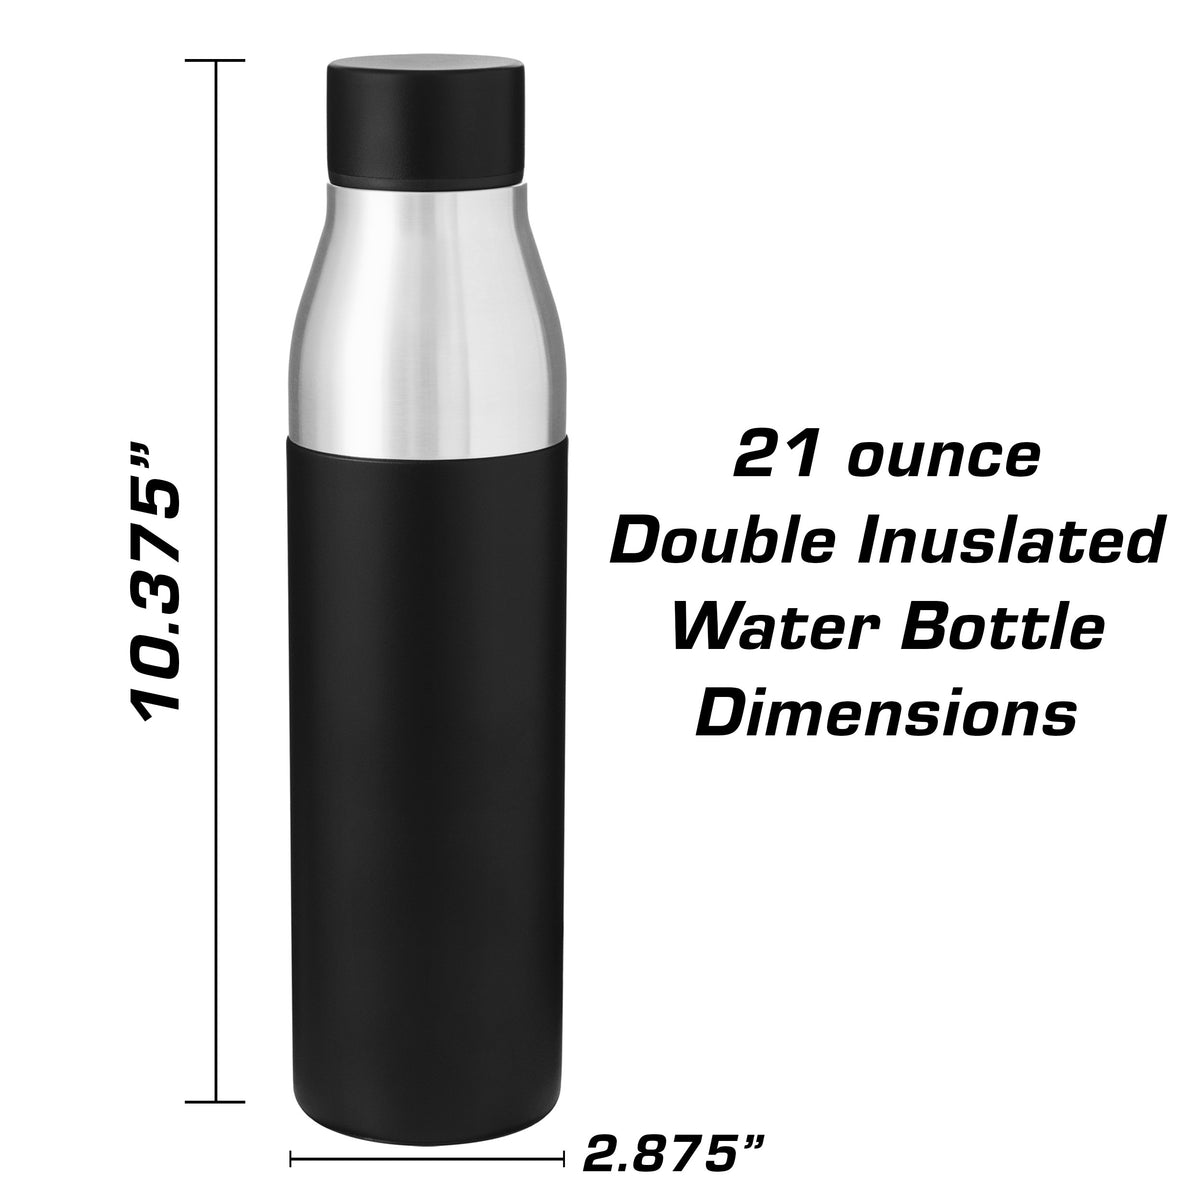 MG MGA 1957 Insulated Stainless Steel Water Bottle - 21 oz